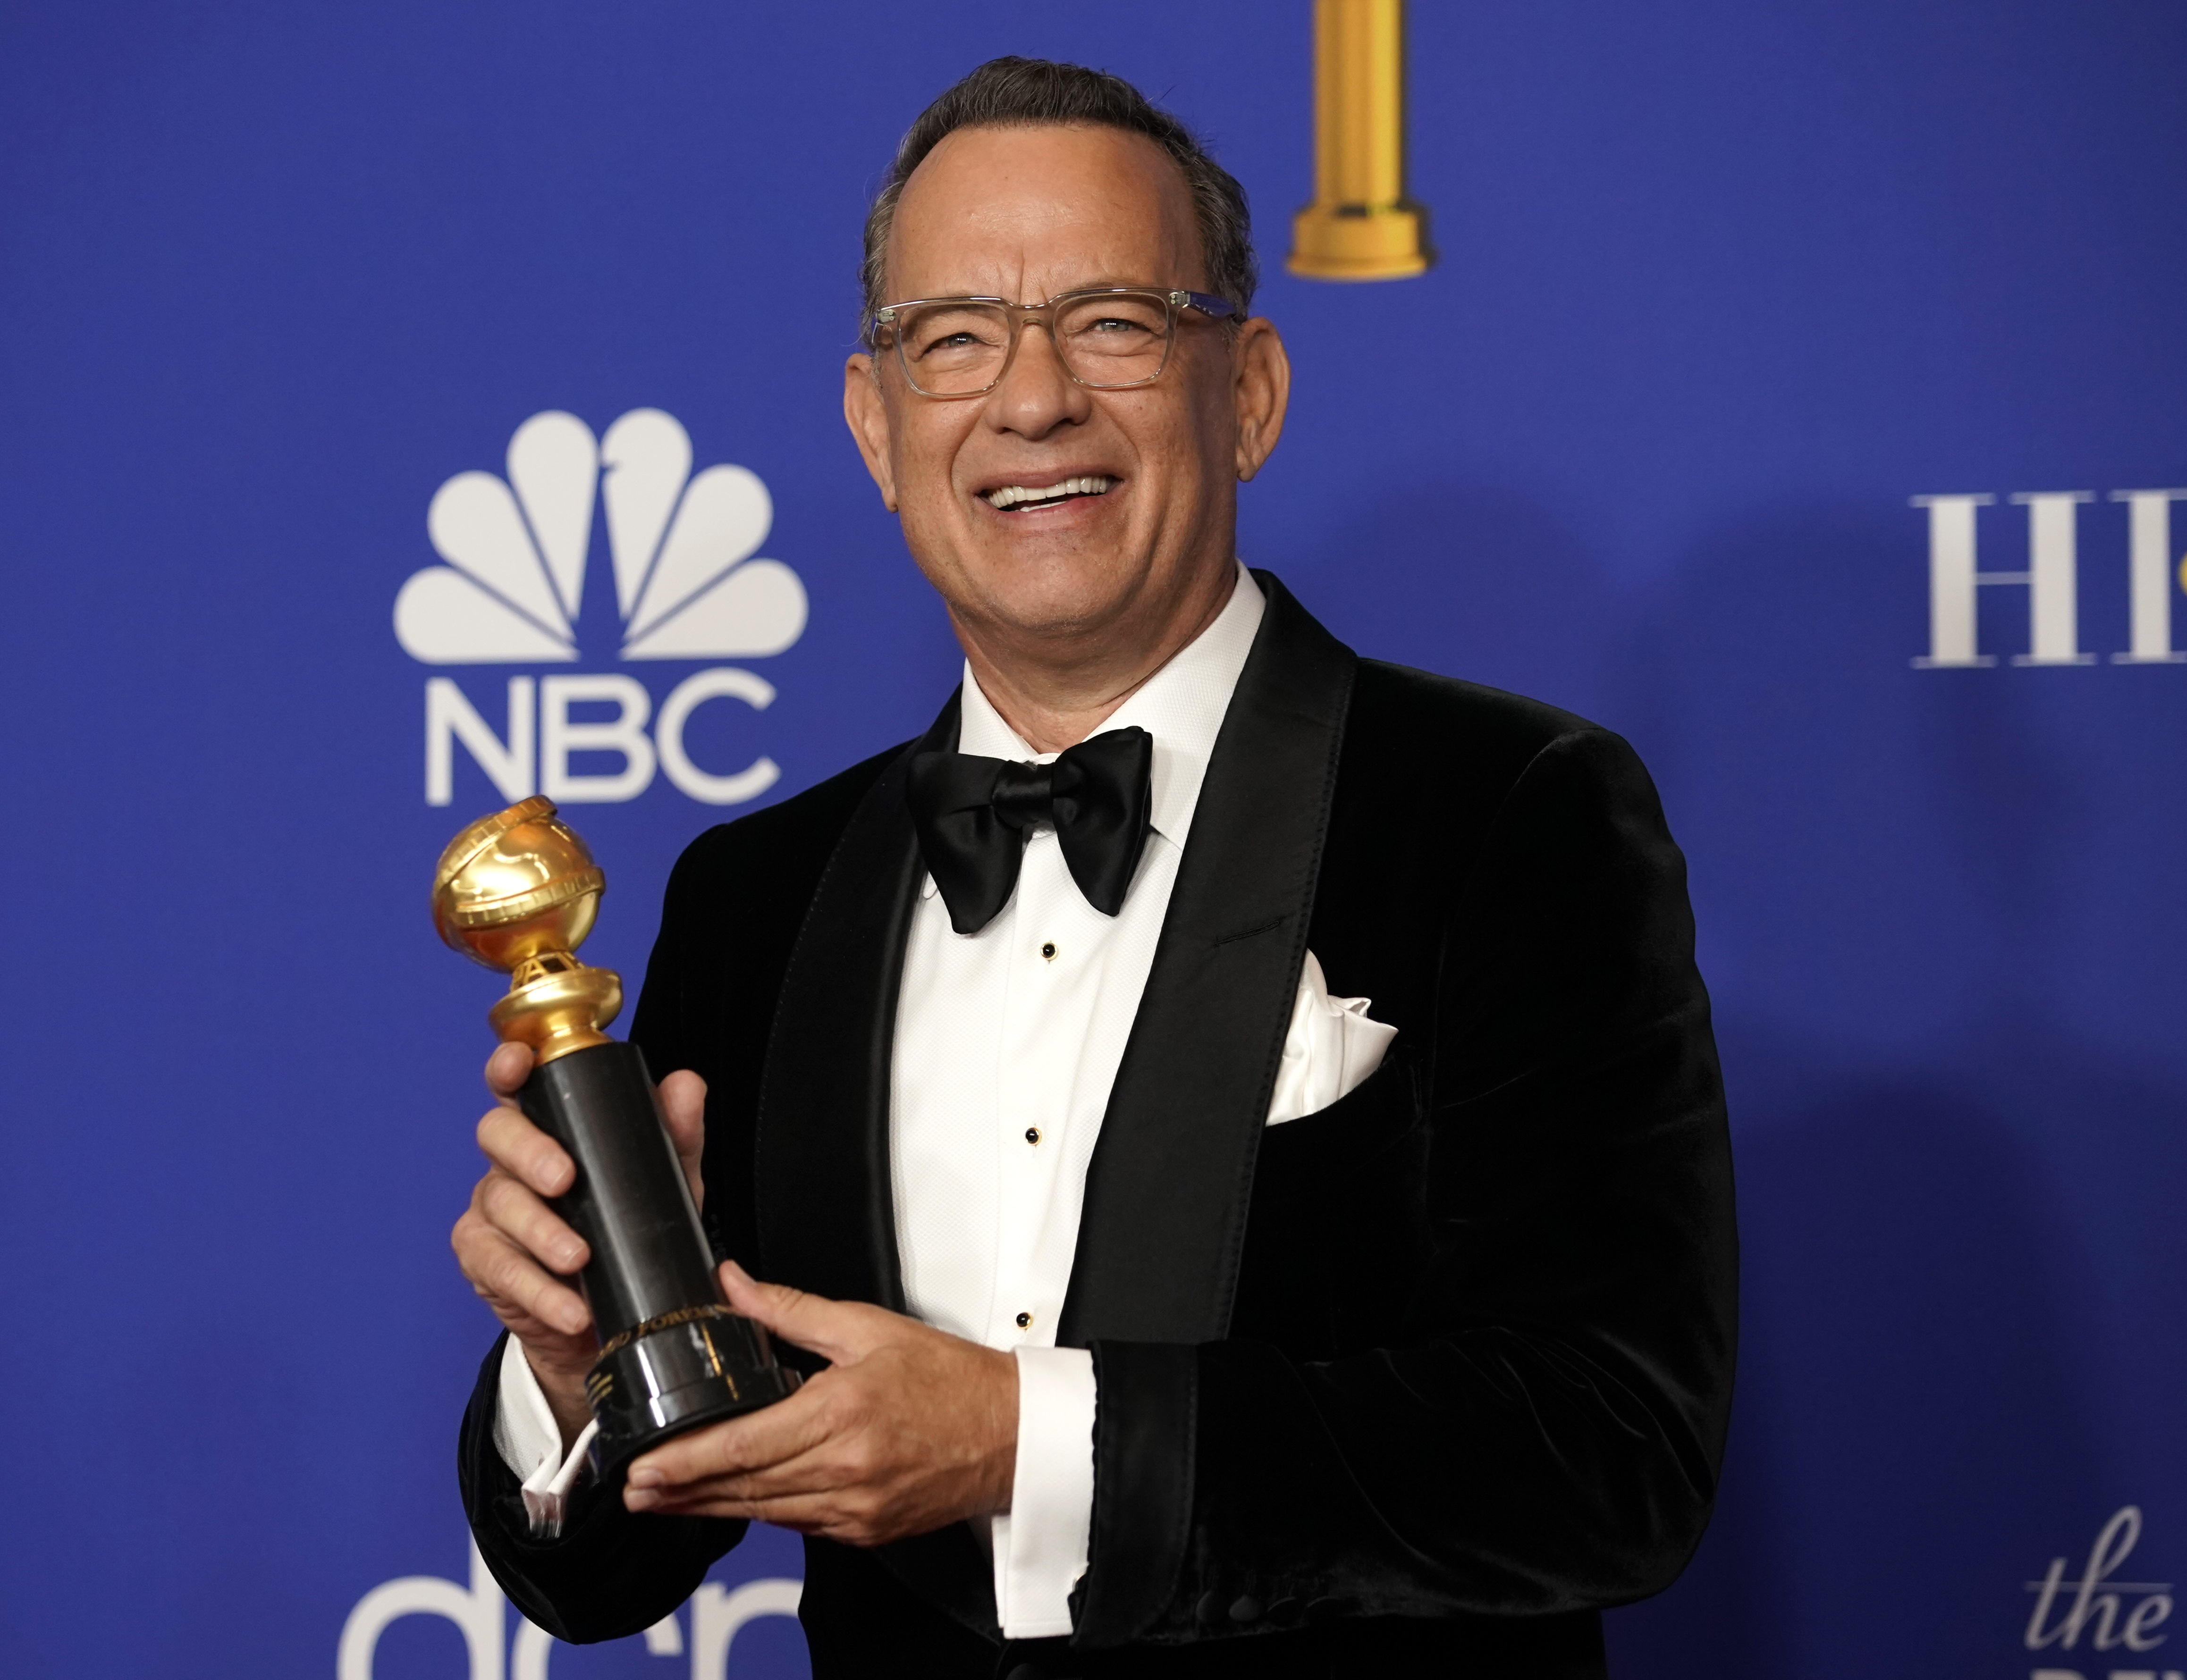 Tom Hanks poses backstage with his Cecil B. DeMille award, Beverly Hills, California, January 5, 2020 - REUTERS/Mike Blake